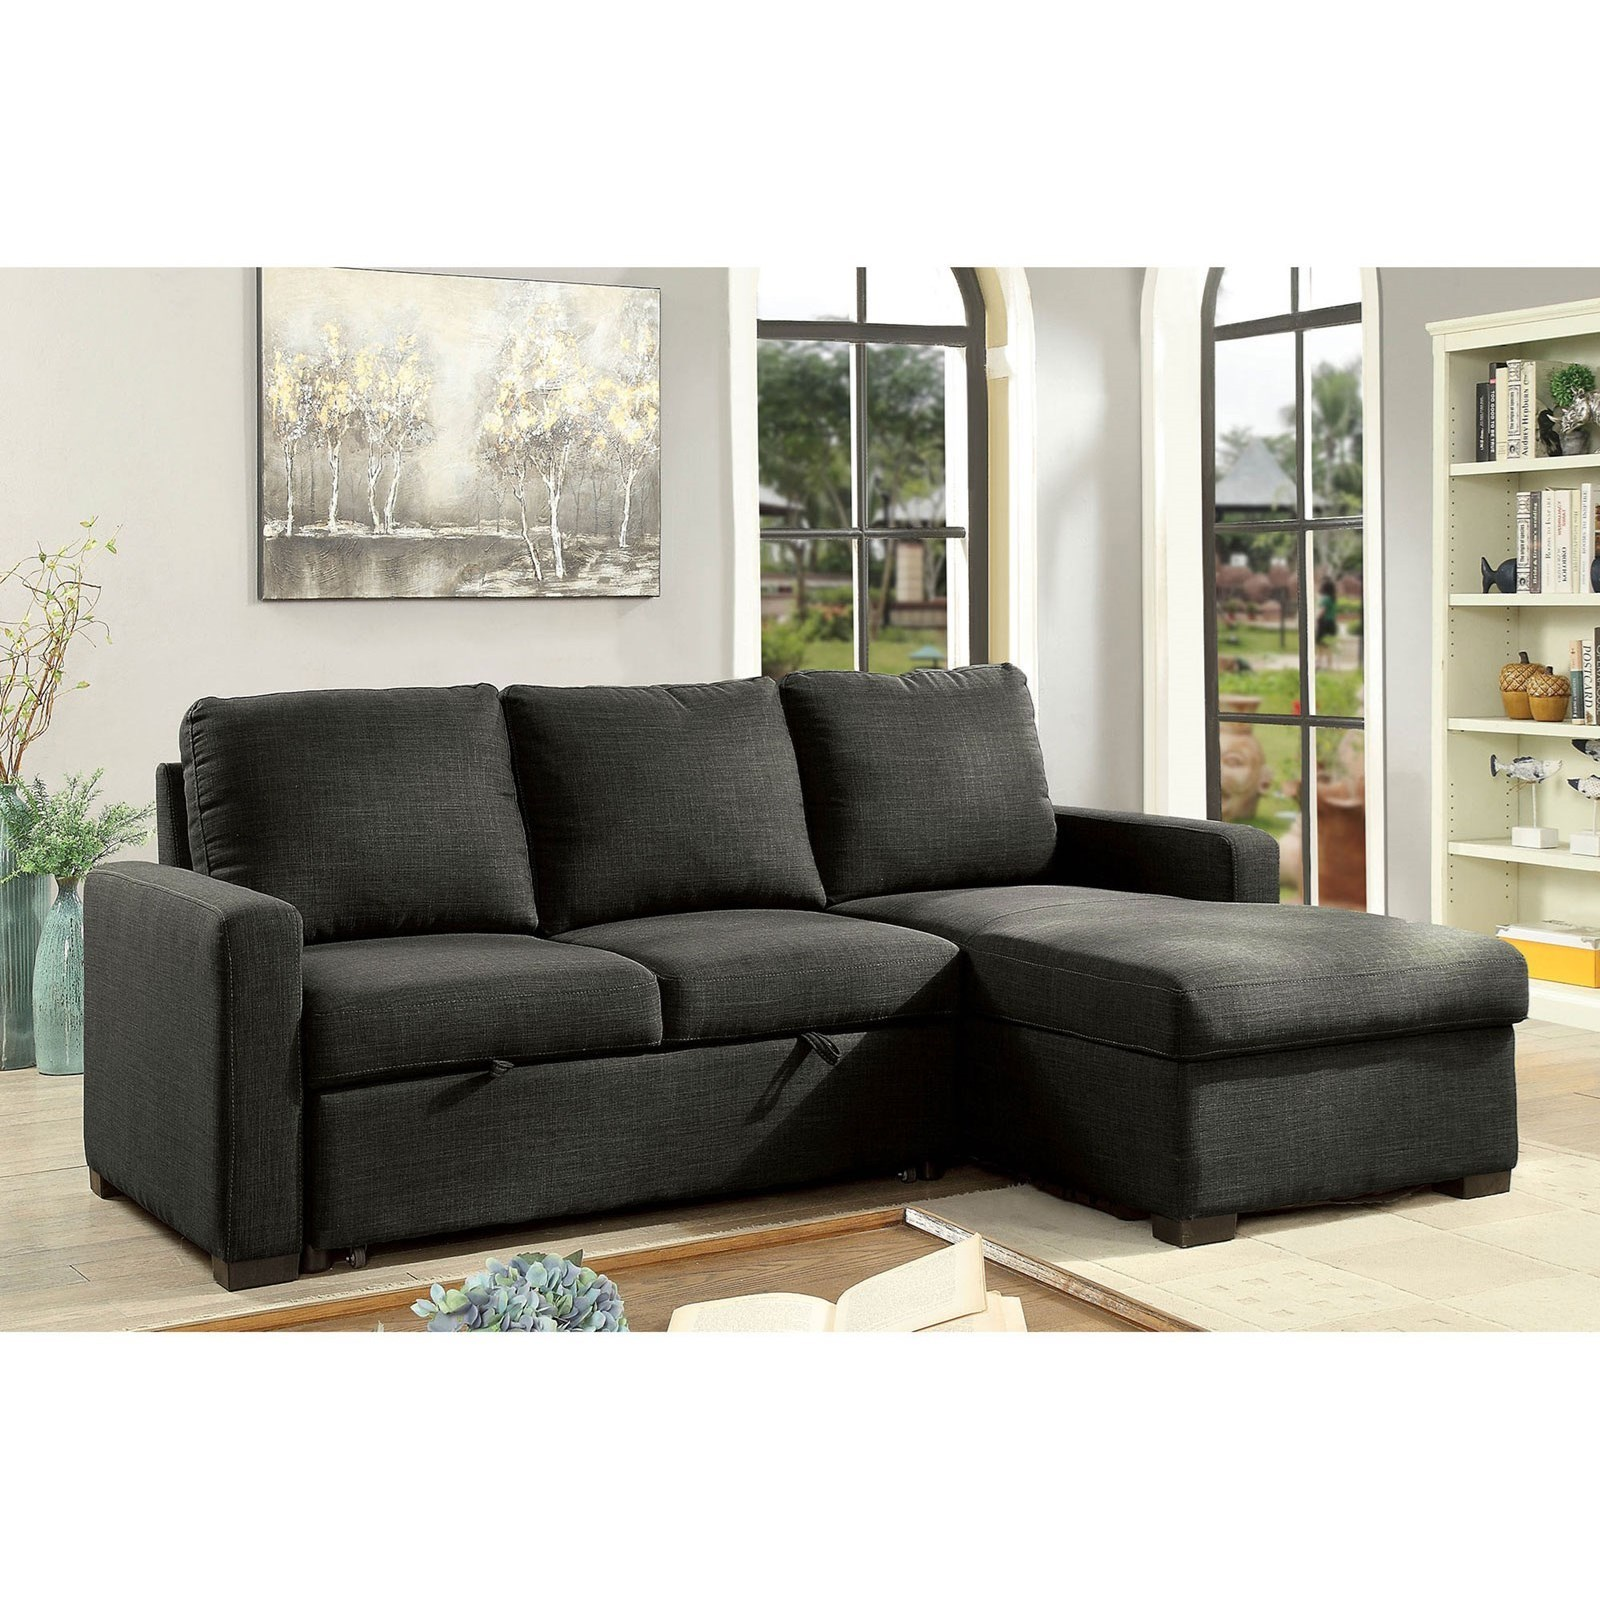 Arabella Sectional at Household Furniture